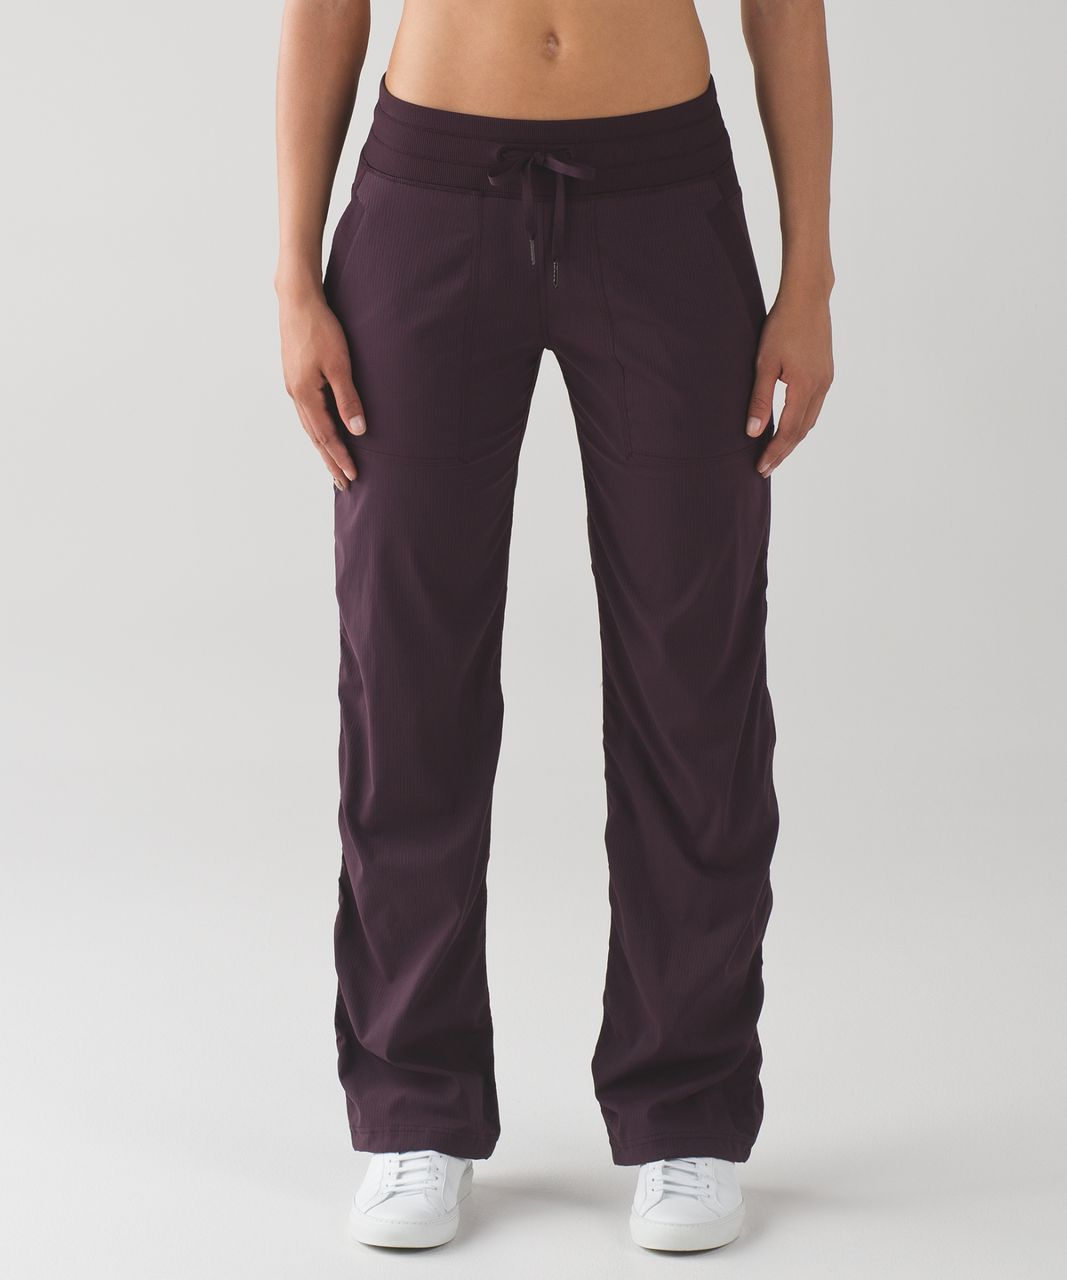 Lululemon Dance Studio Pant III (Regular) *Unlined - Black Cherry